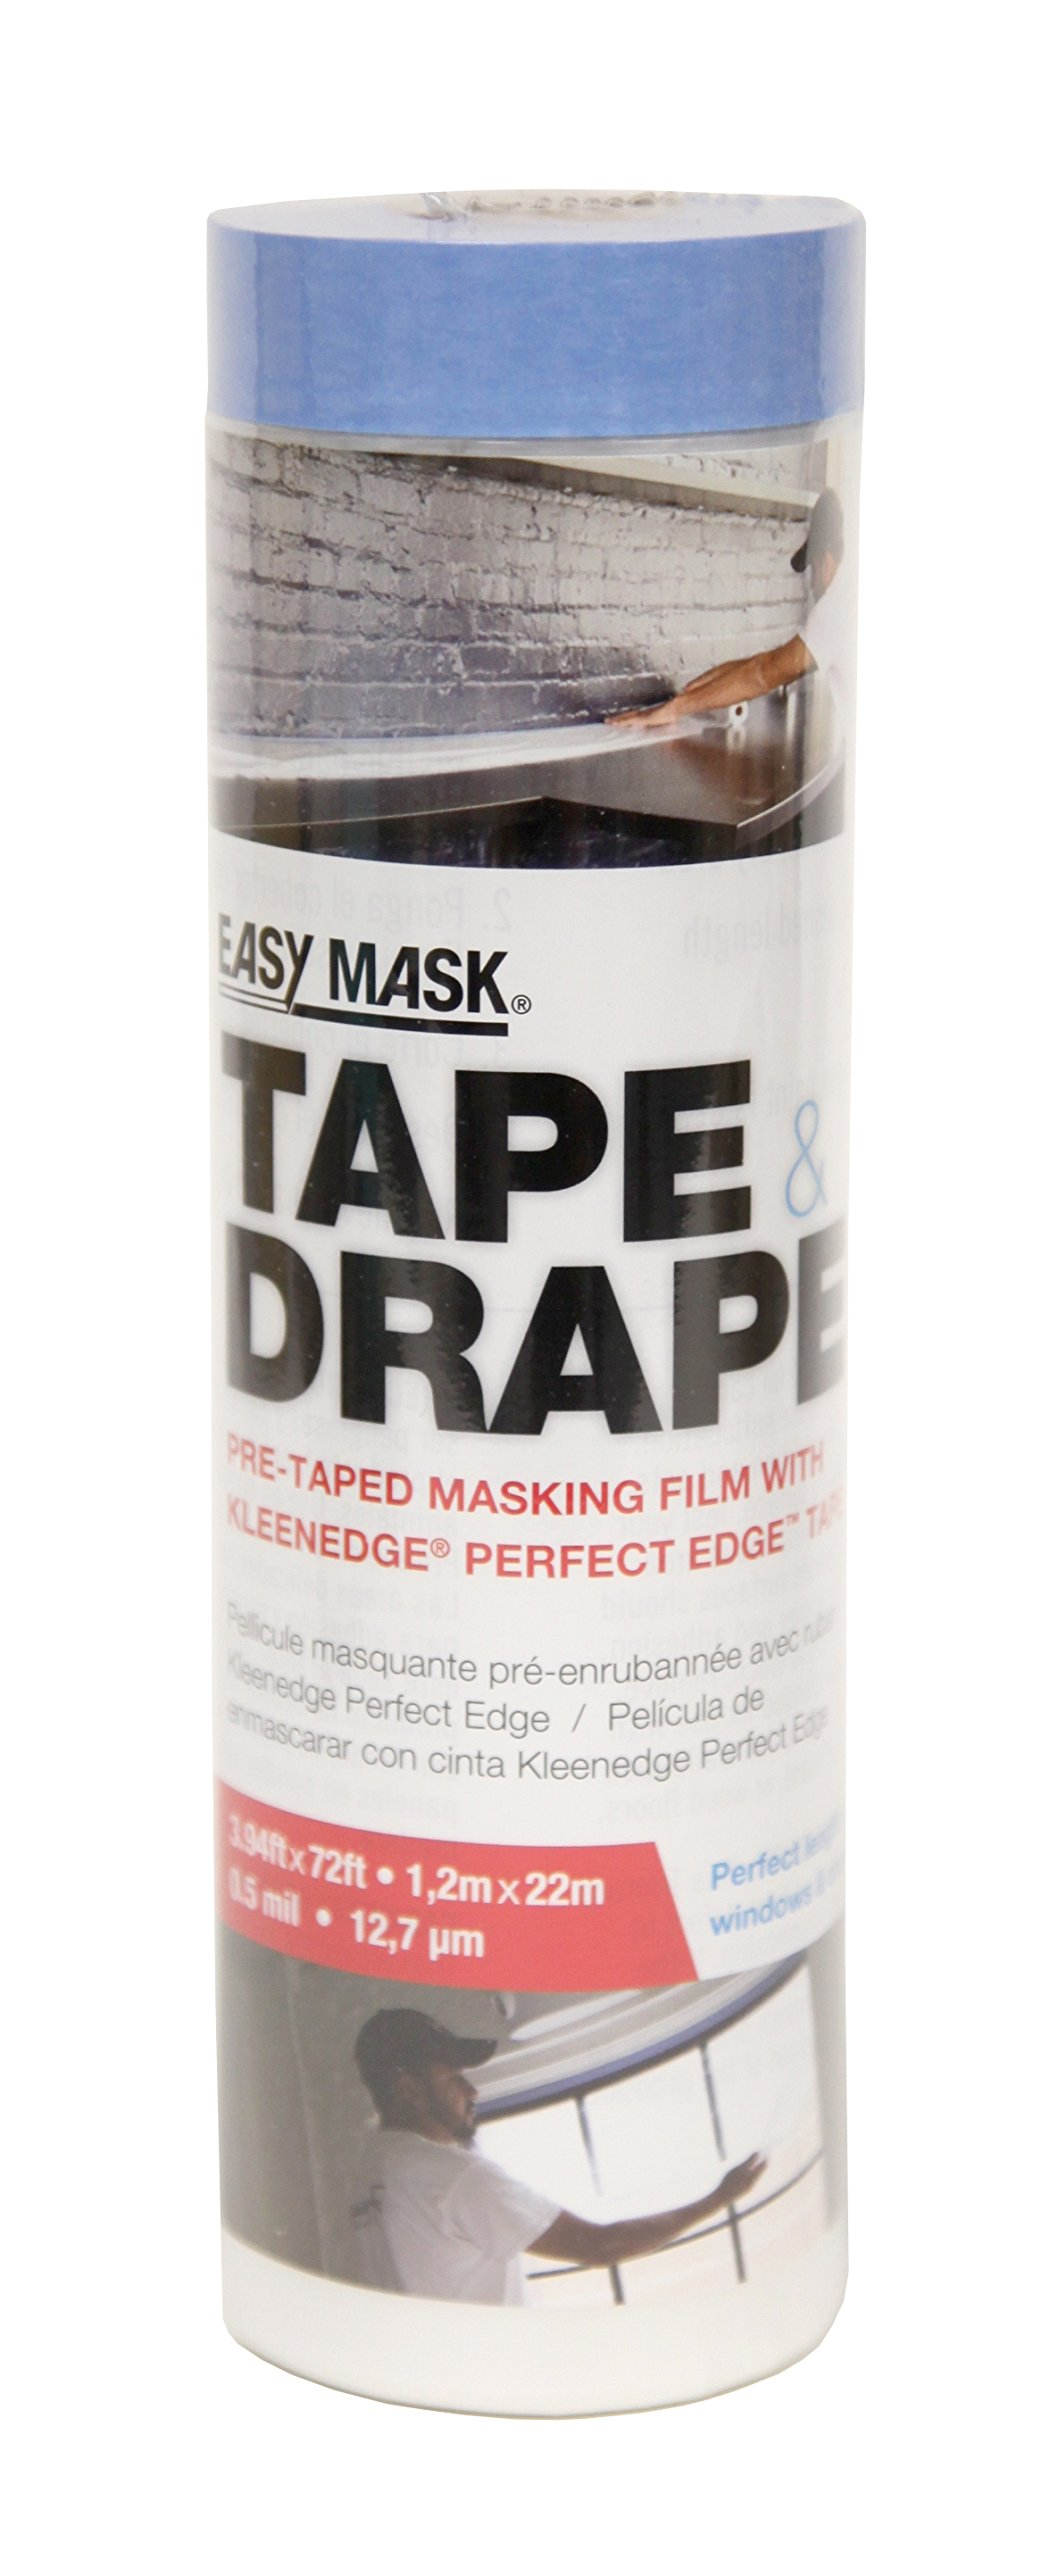 Easy Mask Tape & Drape Pre-Tape Masking Film 3.94 x 72 feet with 14 day PerfectEdge Tape